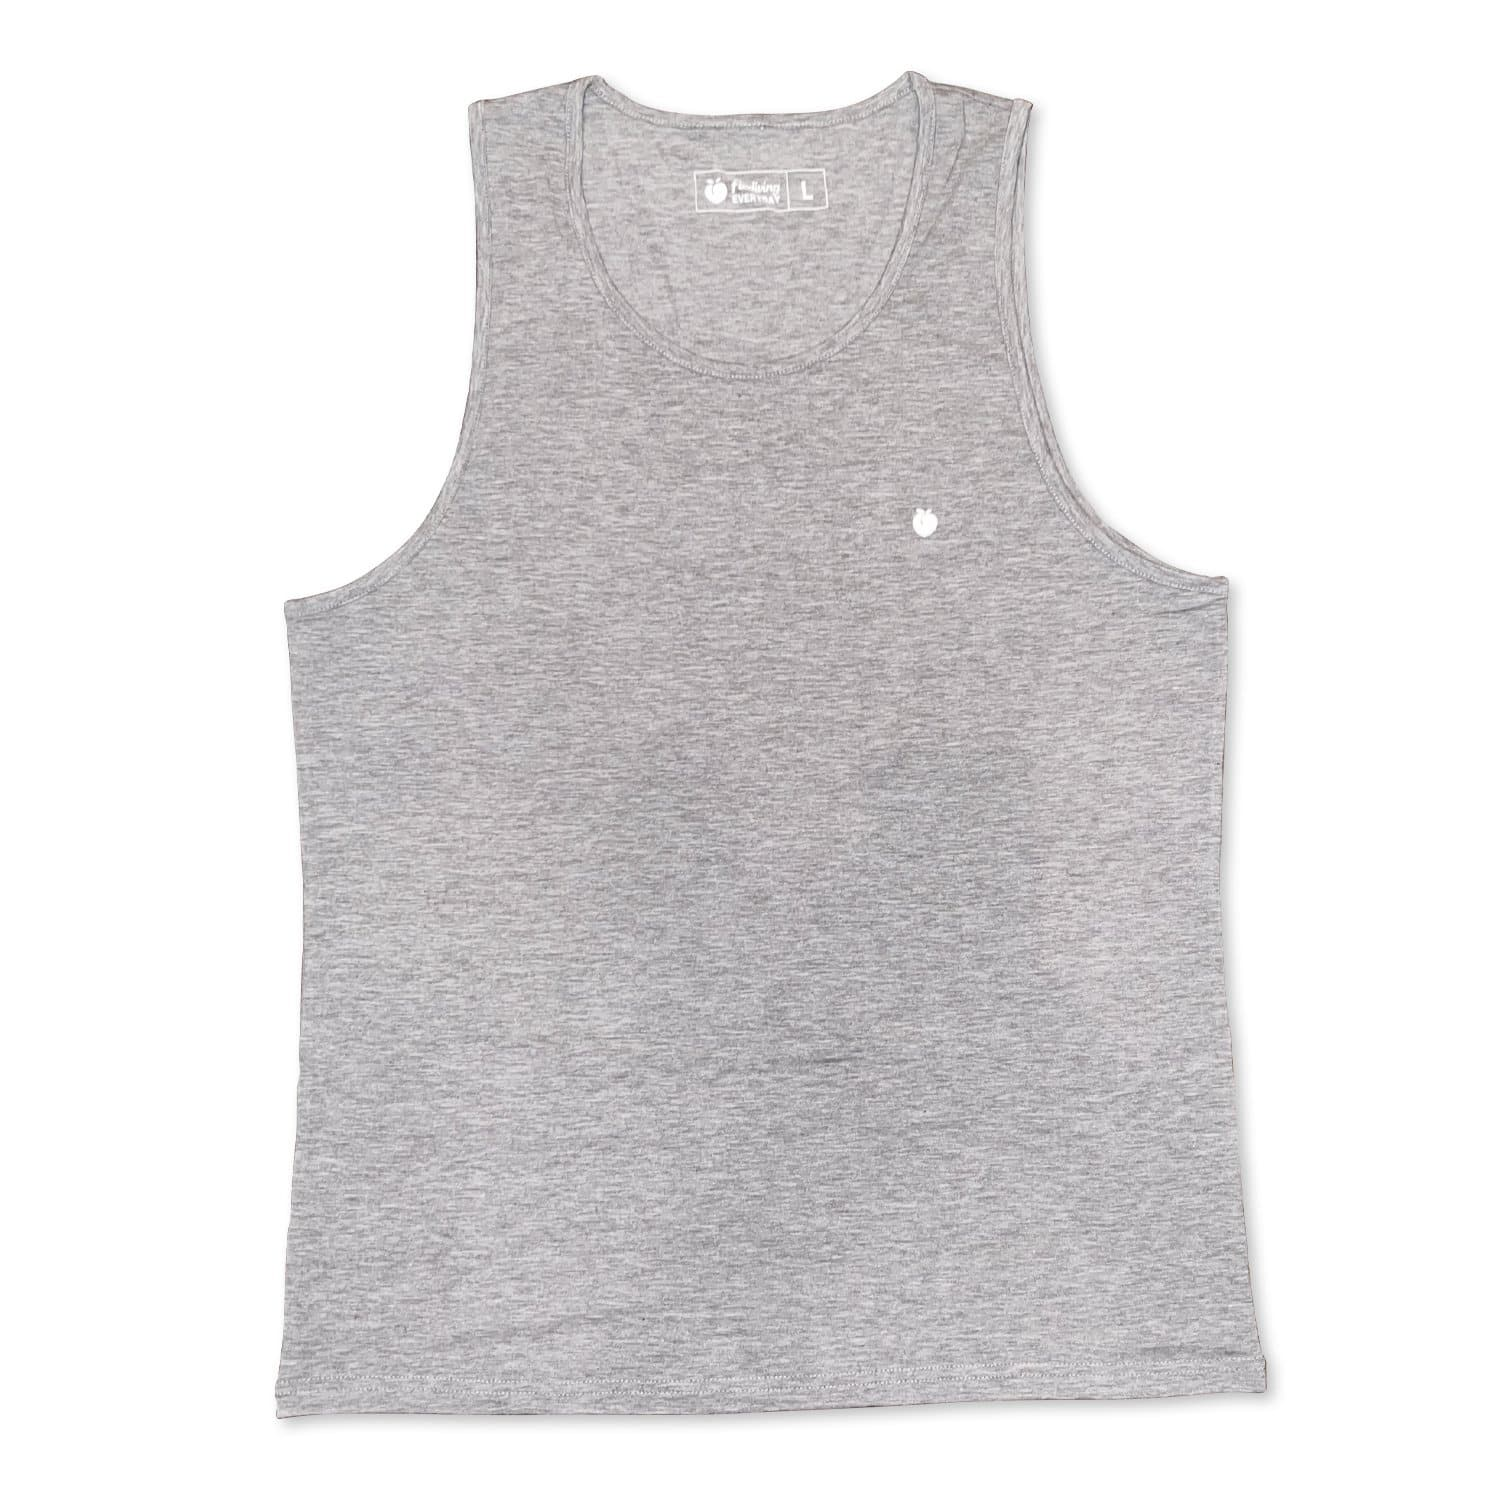 Men's EVERYDAY Basic Tank Top - Heather Gray